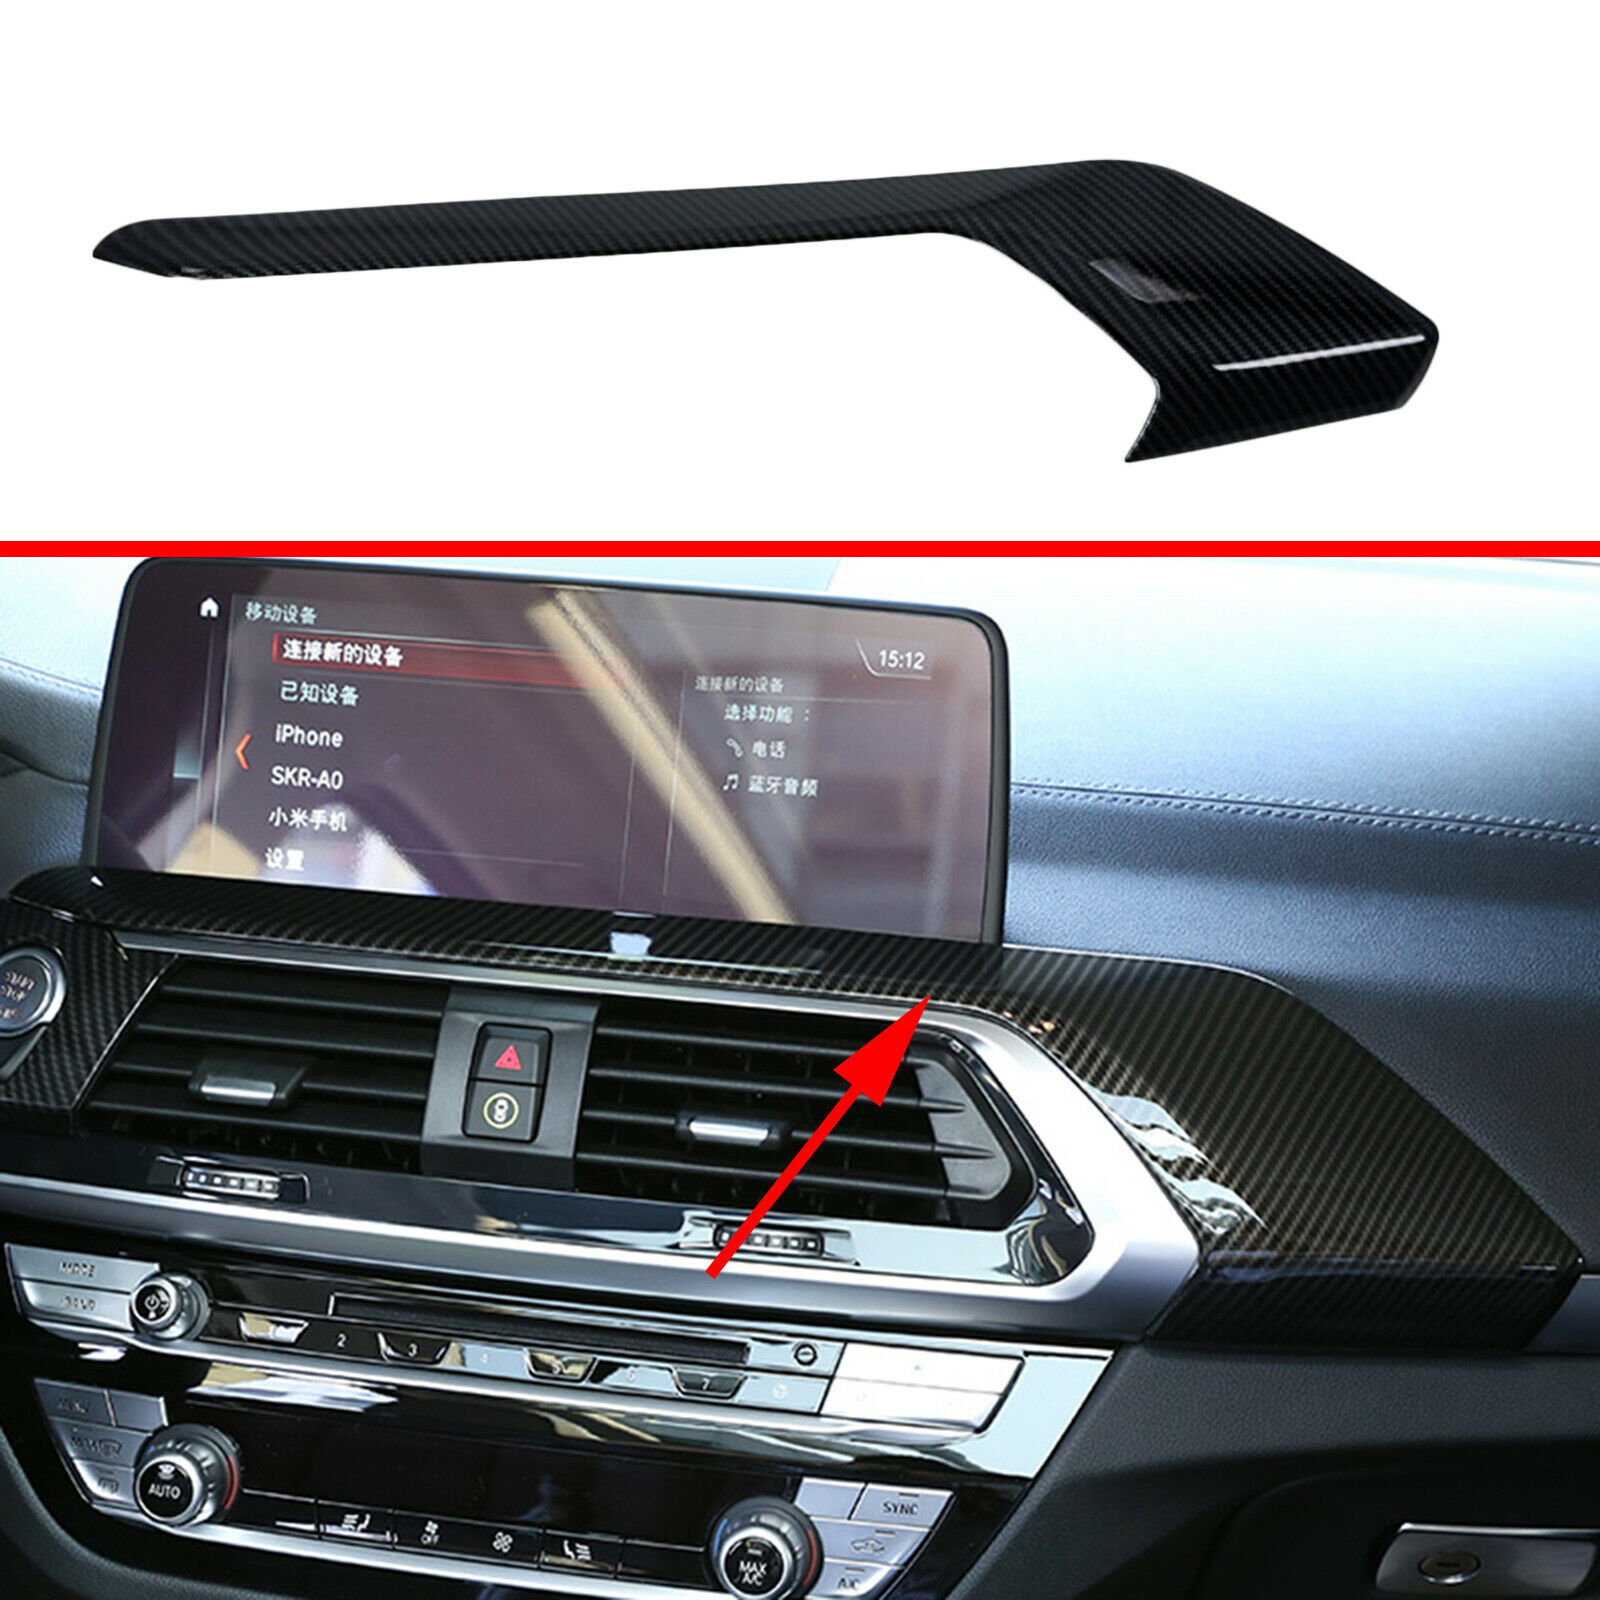 Dashboard Interior Air Vent Outlet Central Protector Cover Trim Fit For <font><b>BMW</b></font> <font><b>X3</b></font> <font><b>G01</b></font> 2018 2019 <font><b>Carbon</b></font> Fiber Accessories image